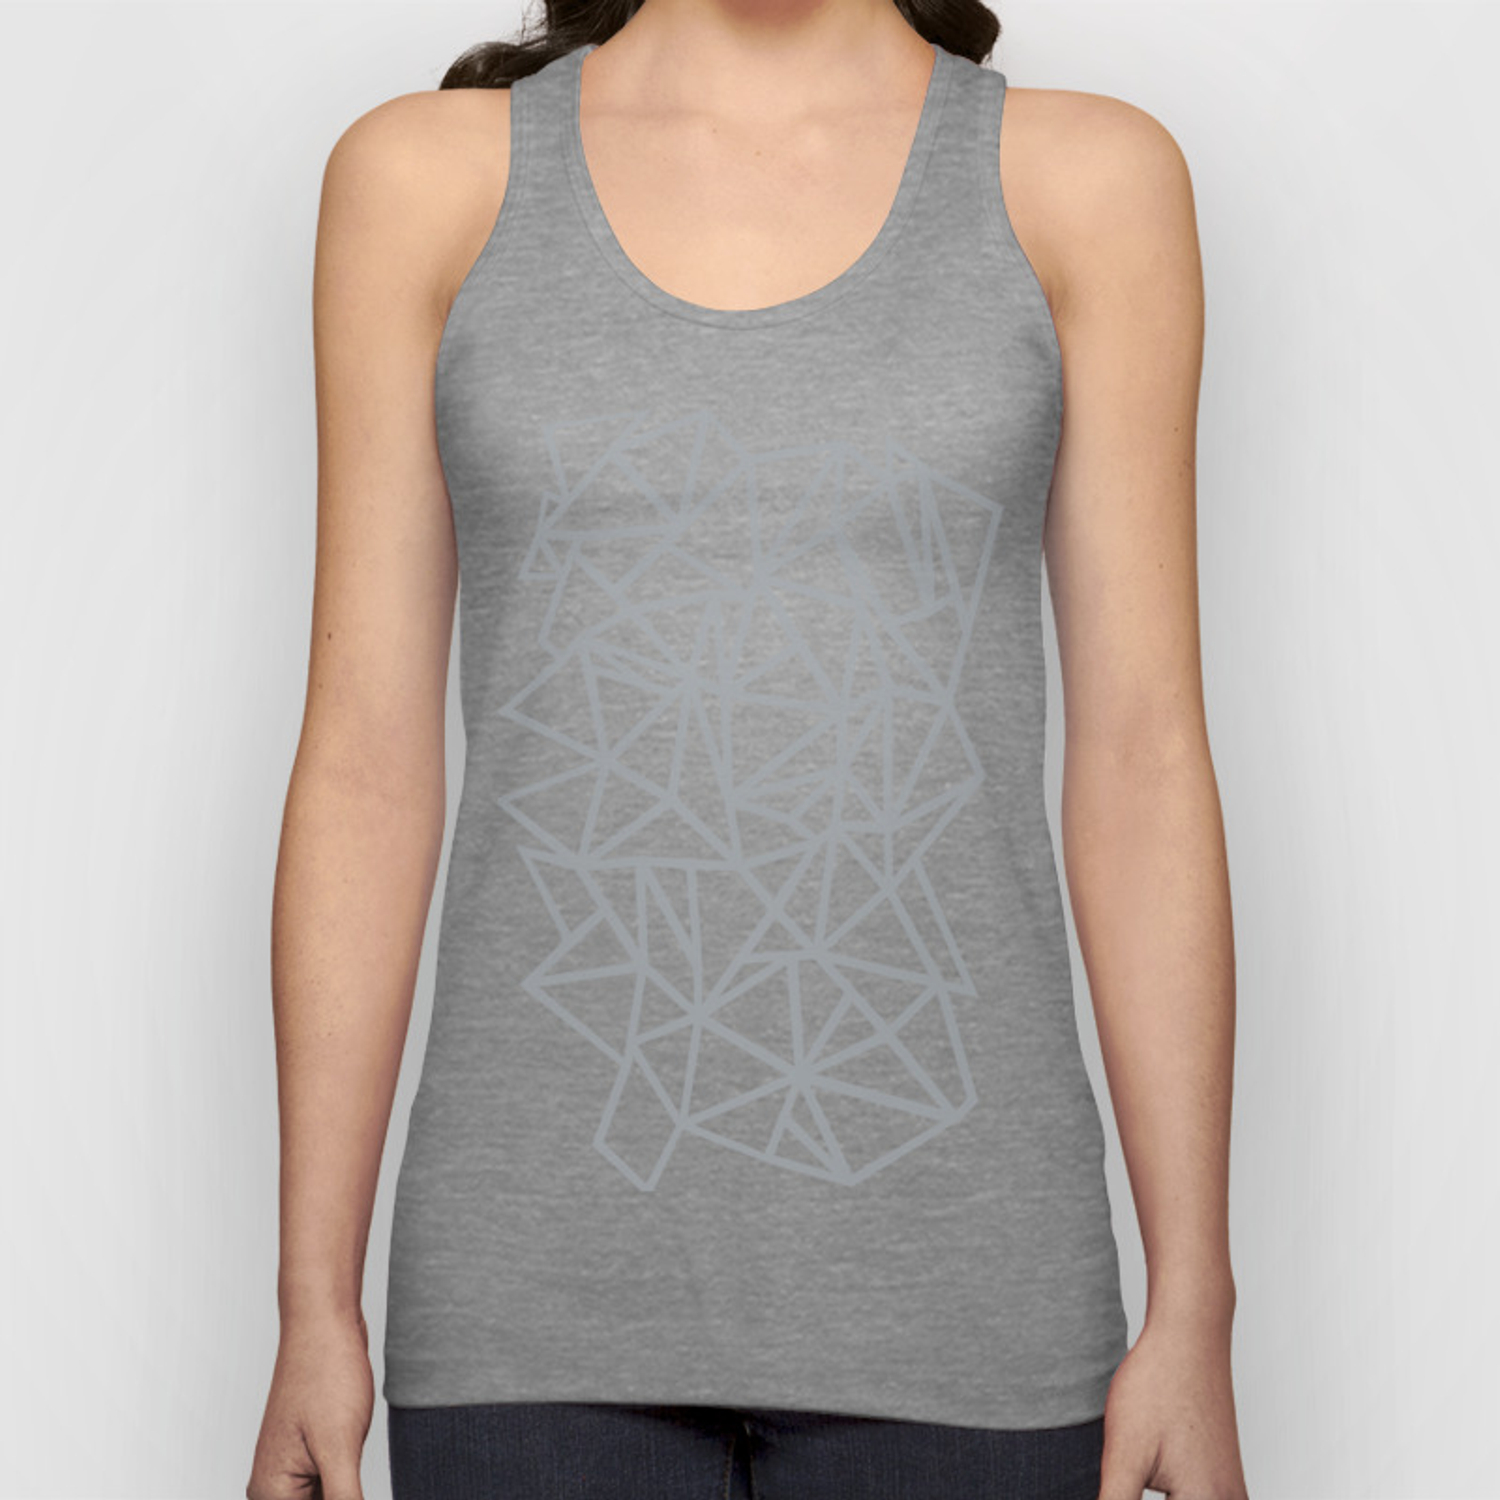 275b47637a53 Abstract Outline Thick White on Grey Unisex Tank Top by projectm | Society6